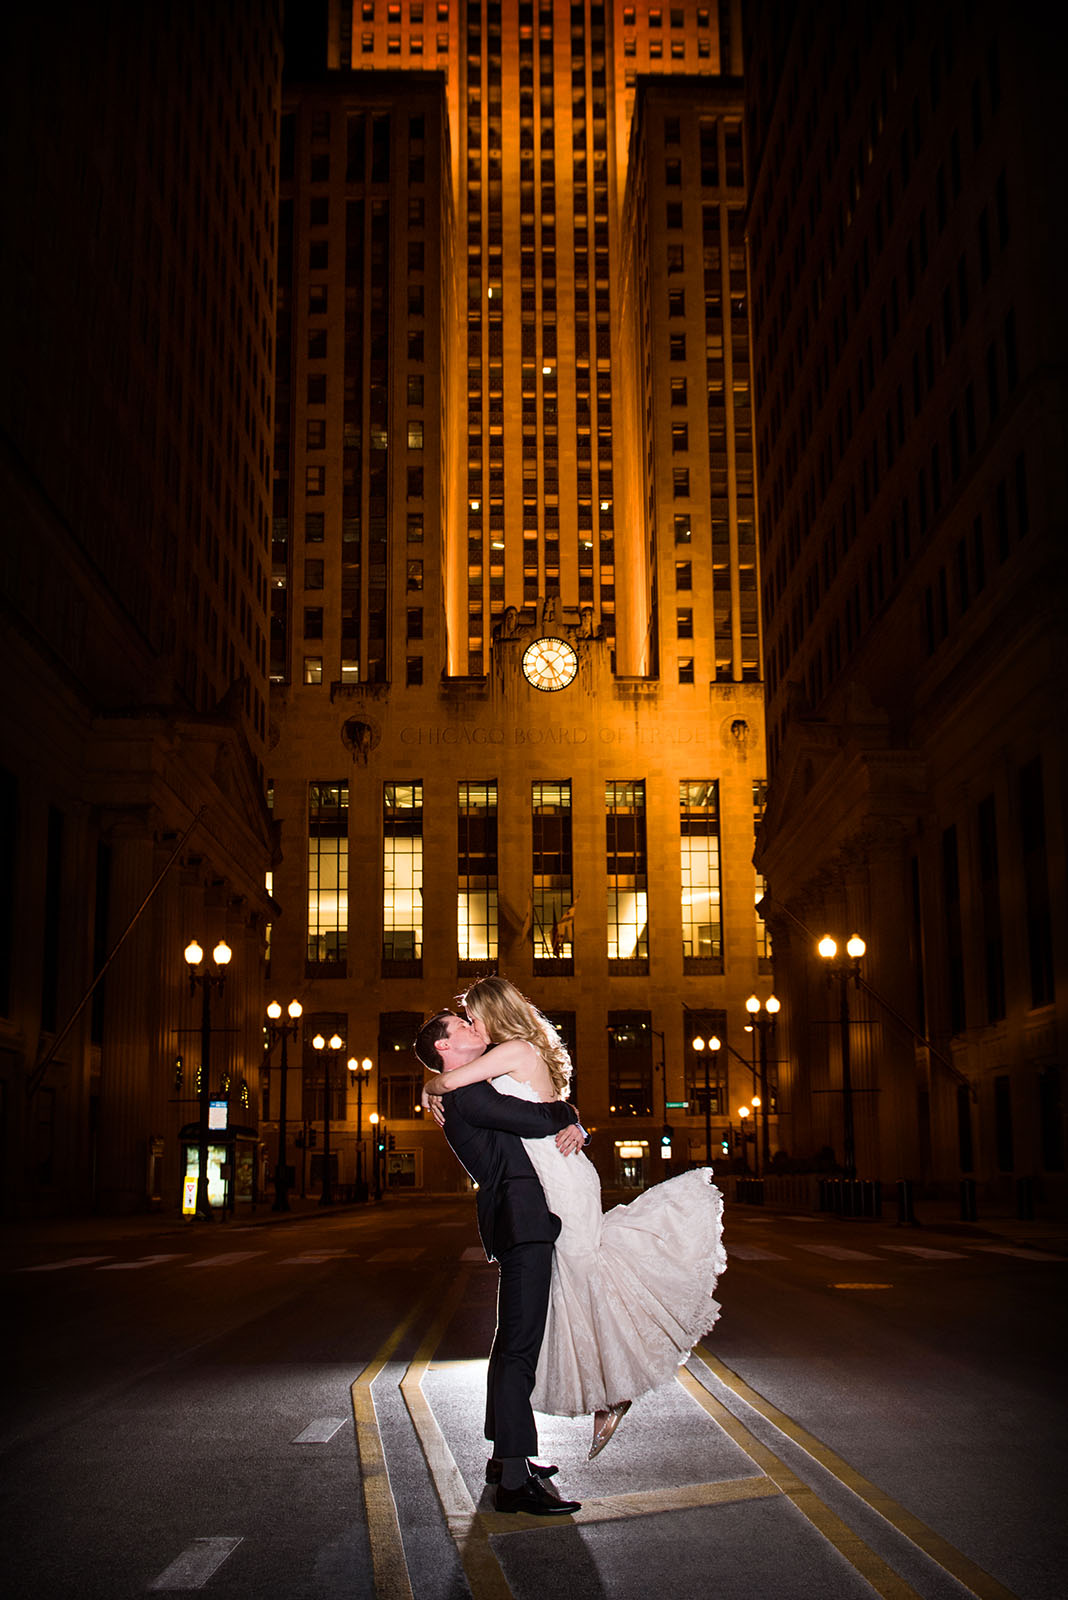 Bride being Lifted Groom LaSalle Street BOT